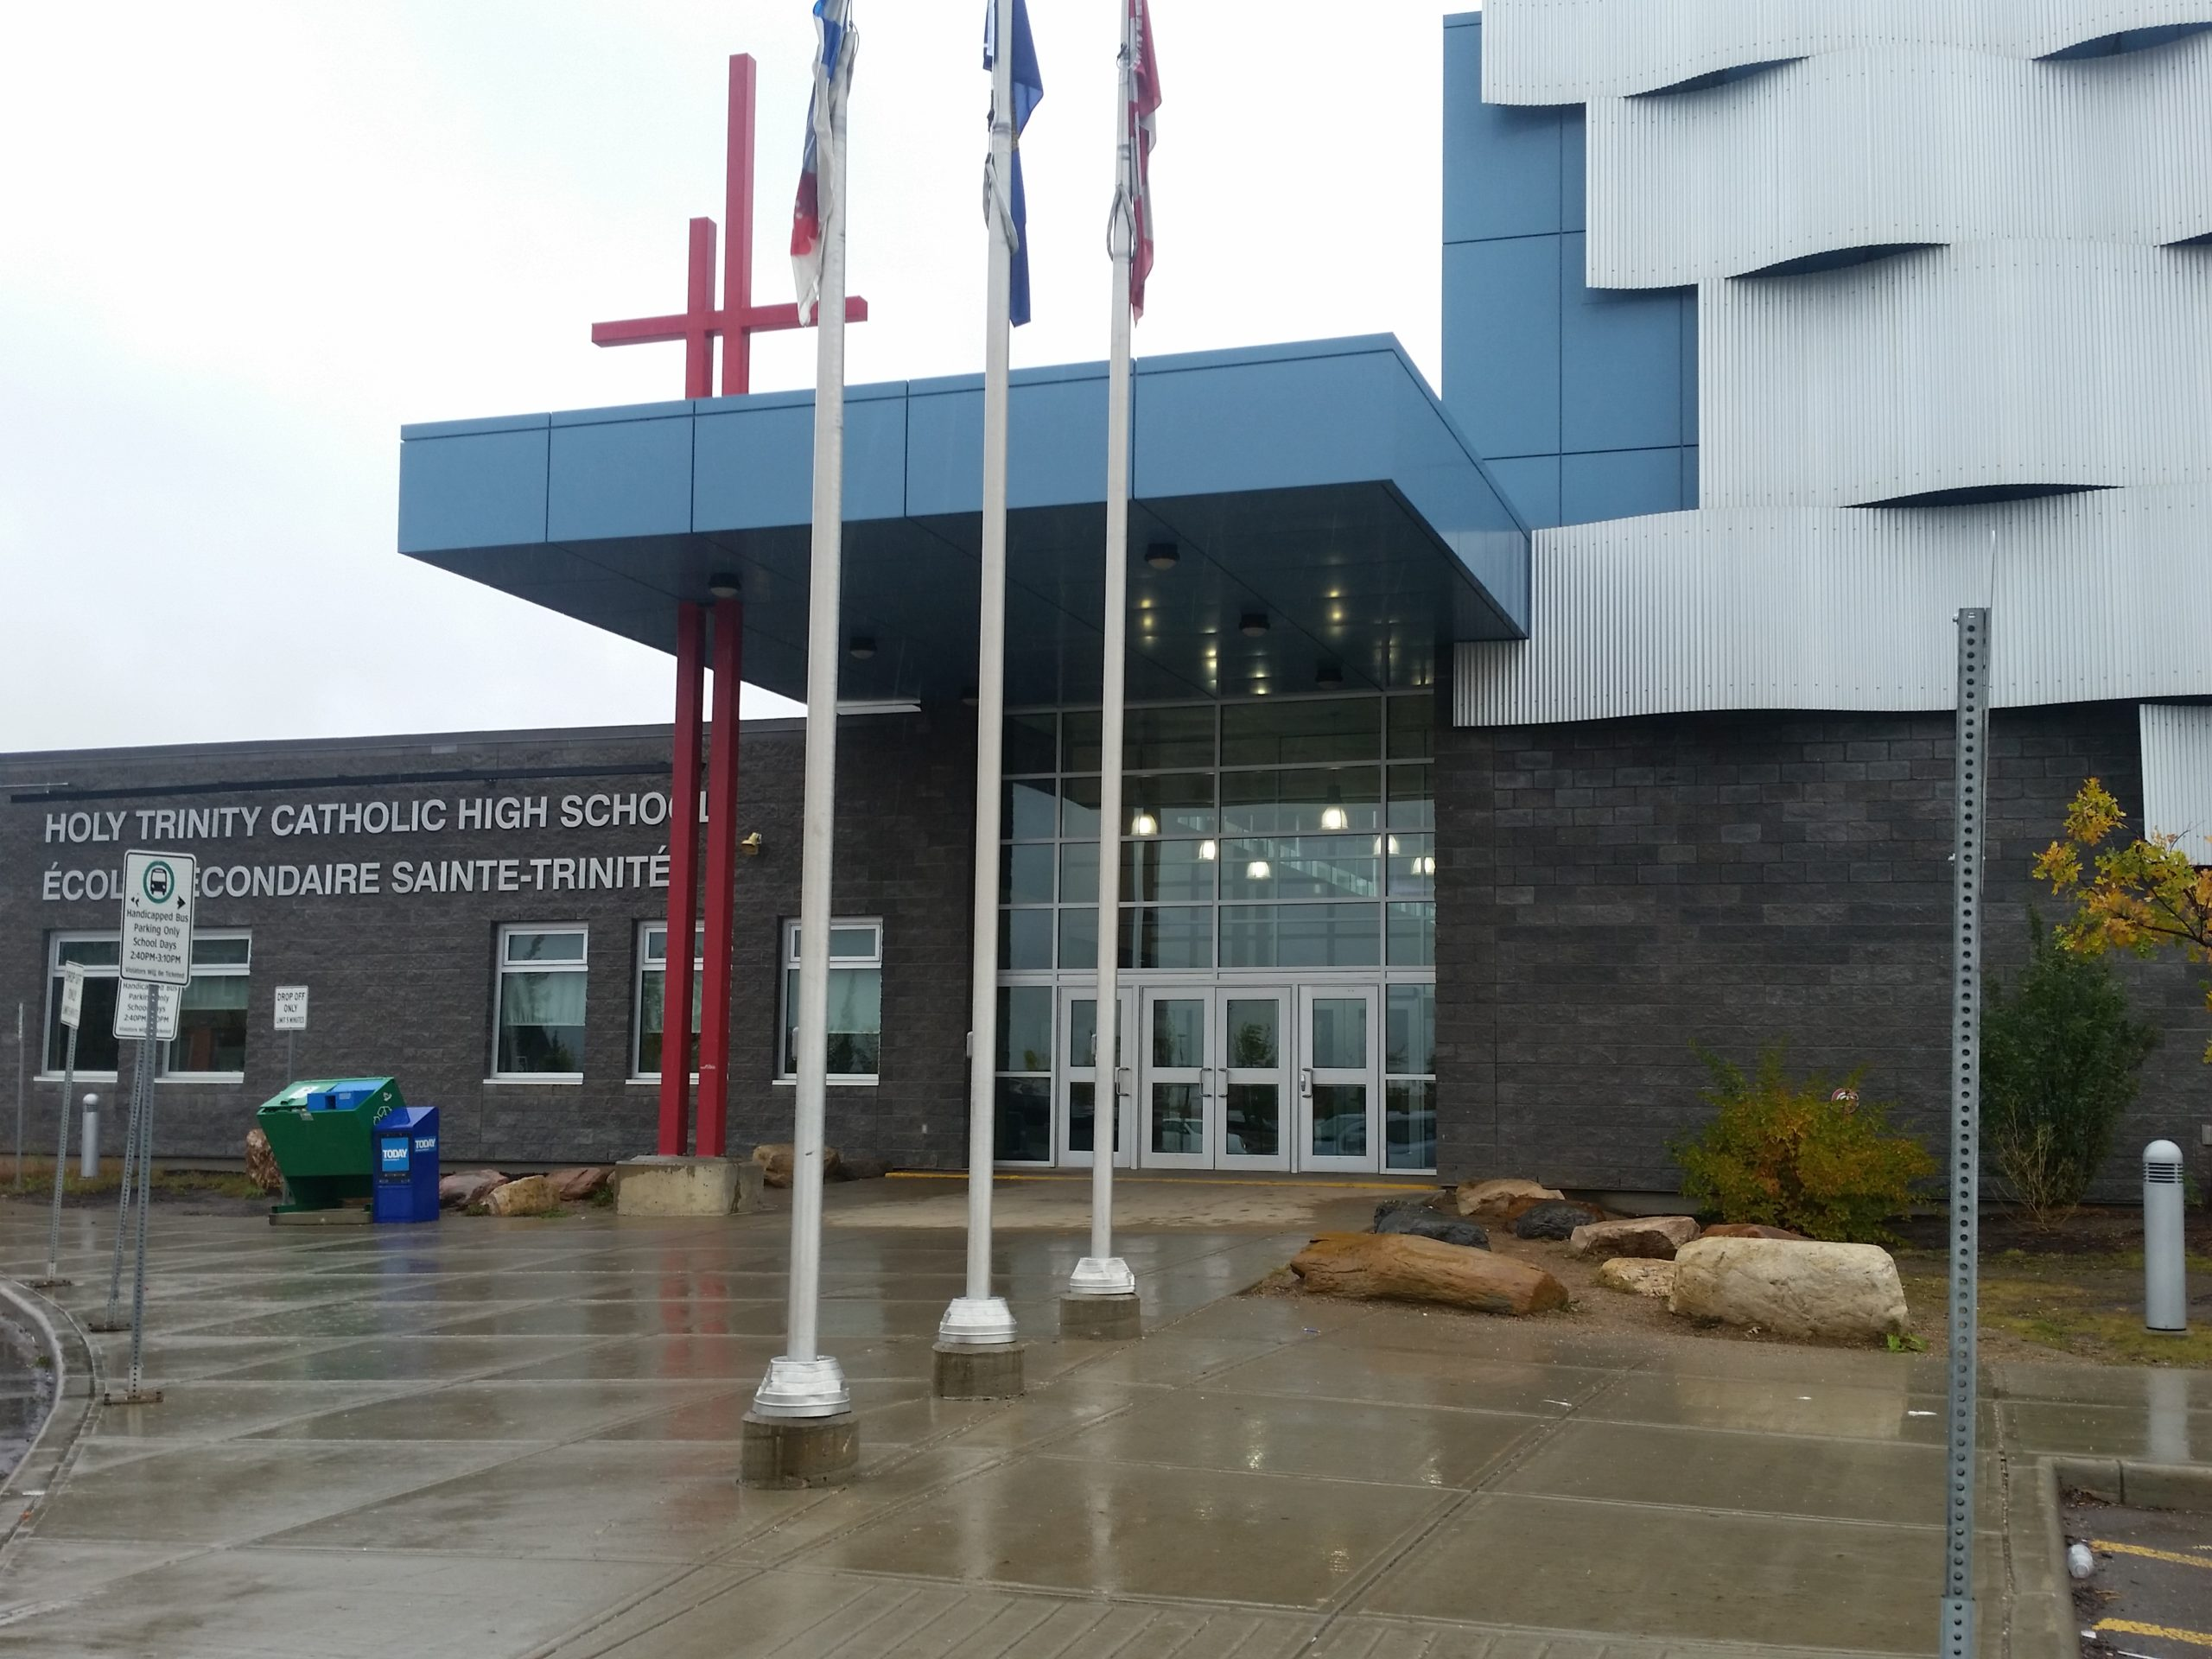 Staff And Students Unharmed After Bear Spray Released Inside Holy Trinity Catholic High School